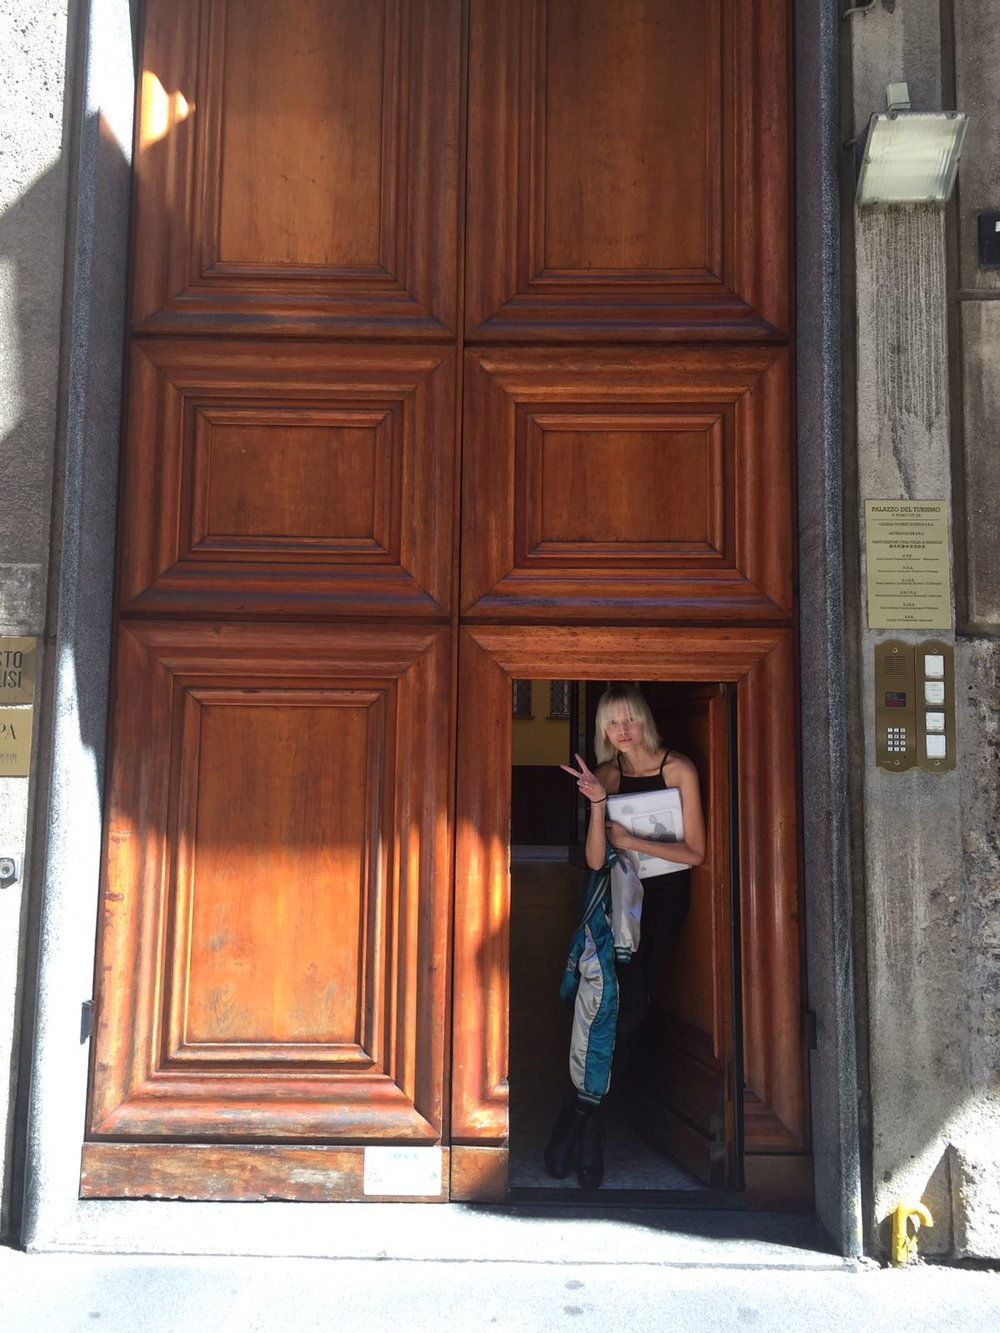 Its very rare that I feel tiny, but Milan doors can do that to you